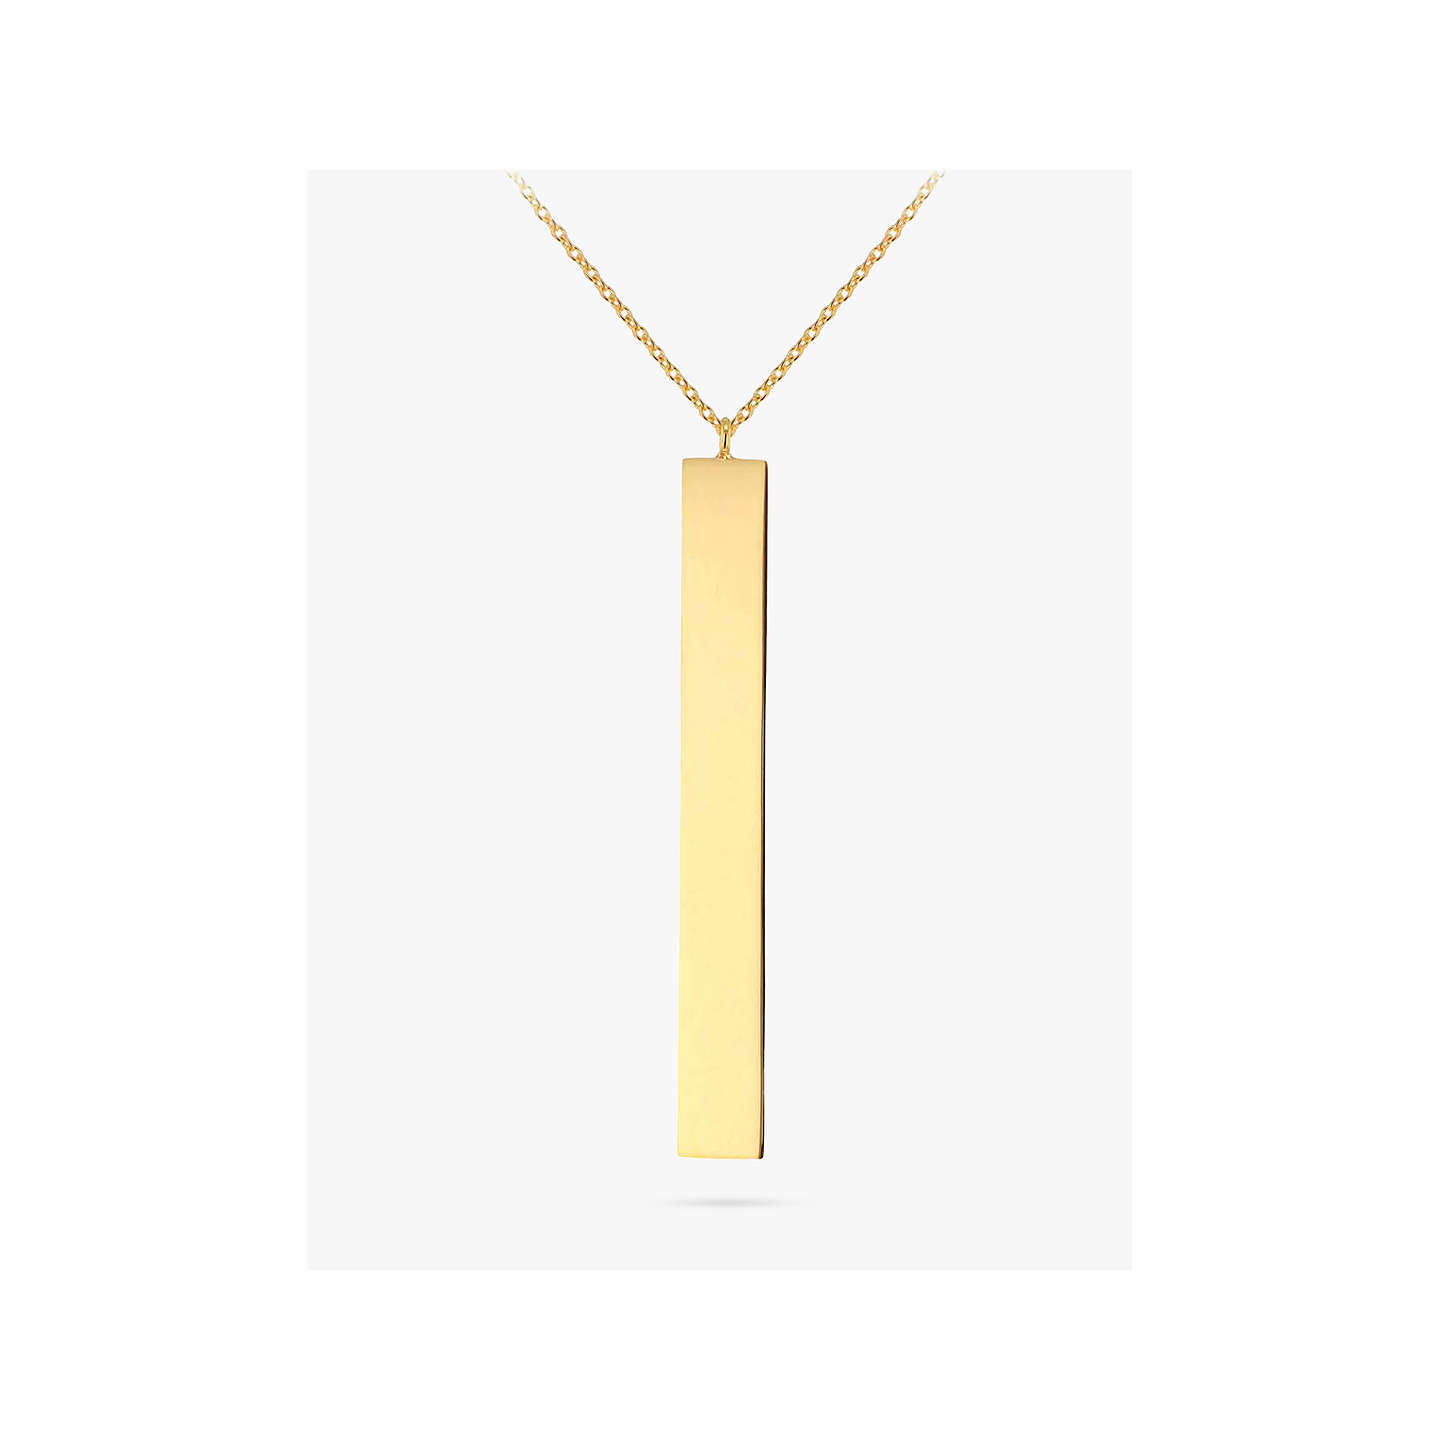 gothic jewelry product hannahroses necklace pendant acrylic gold custom vertical bar